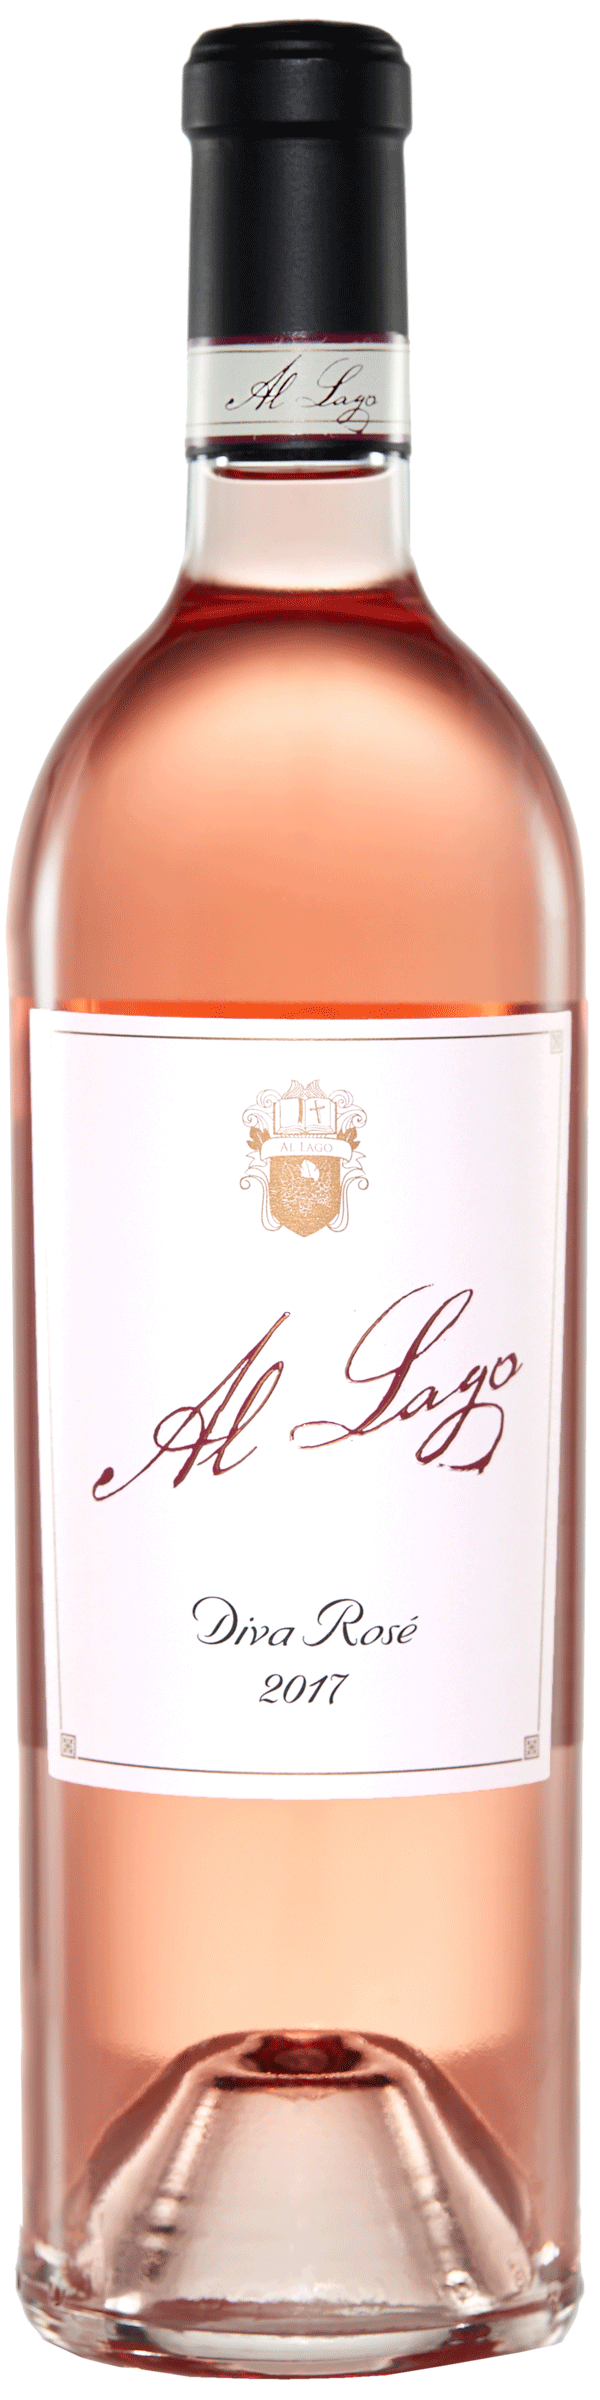 Product Image for 2017 Diva Rosé